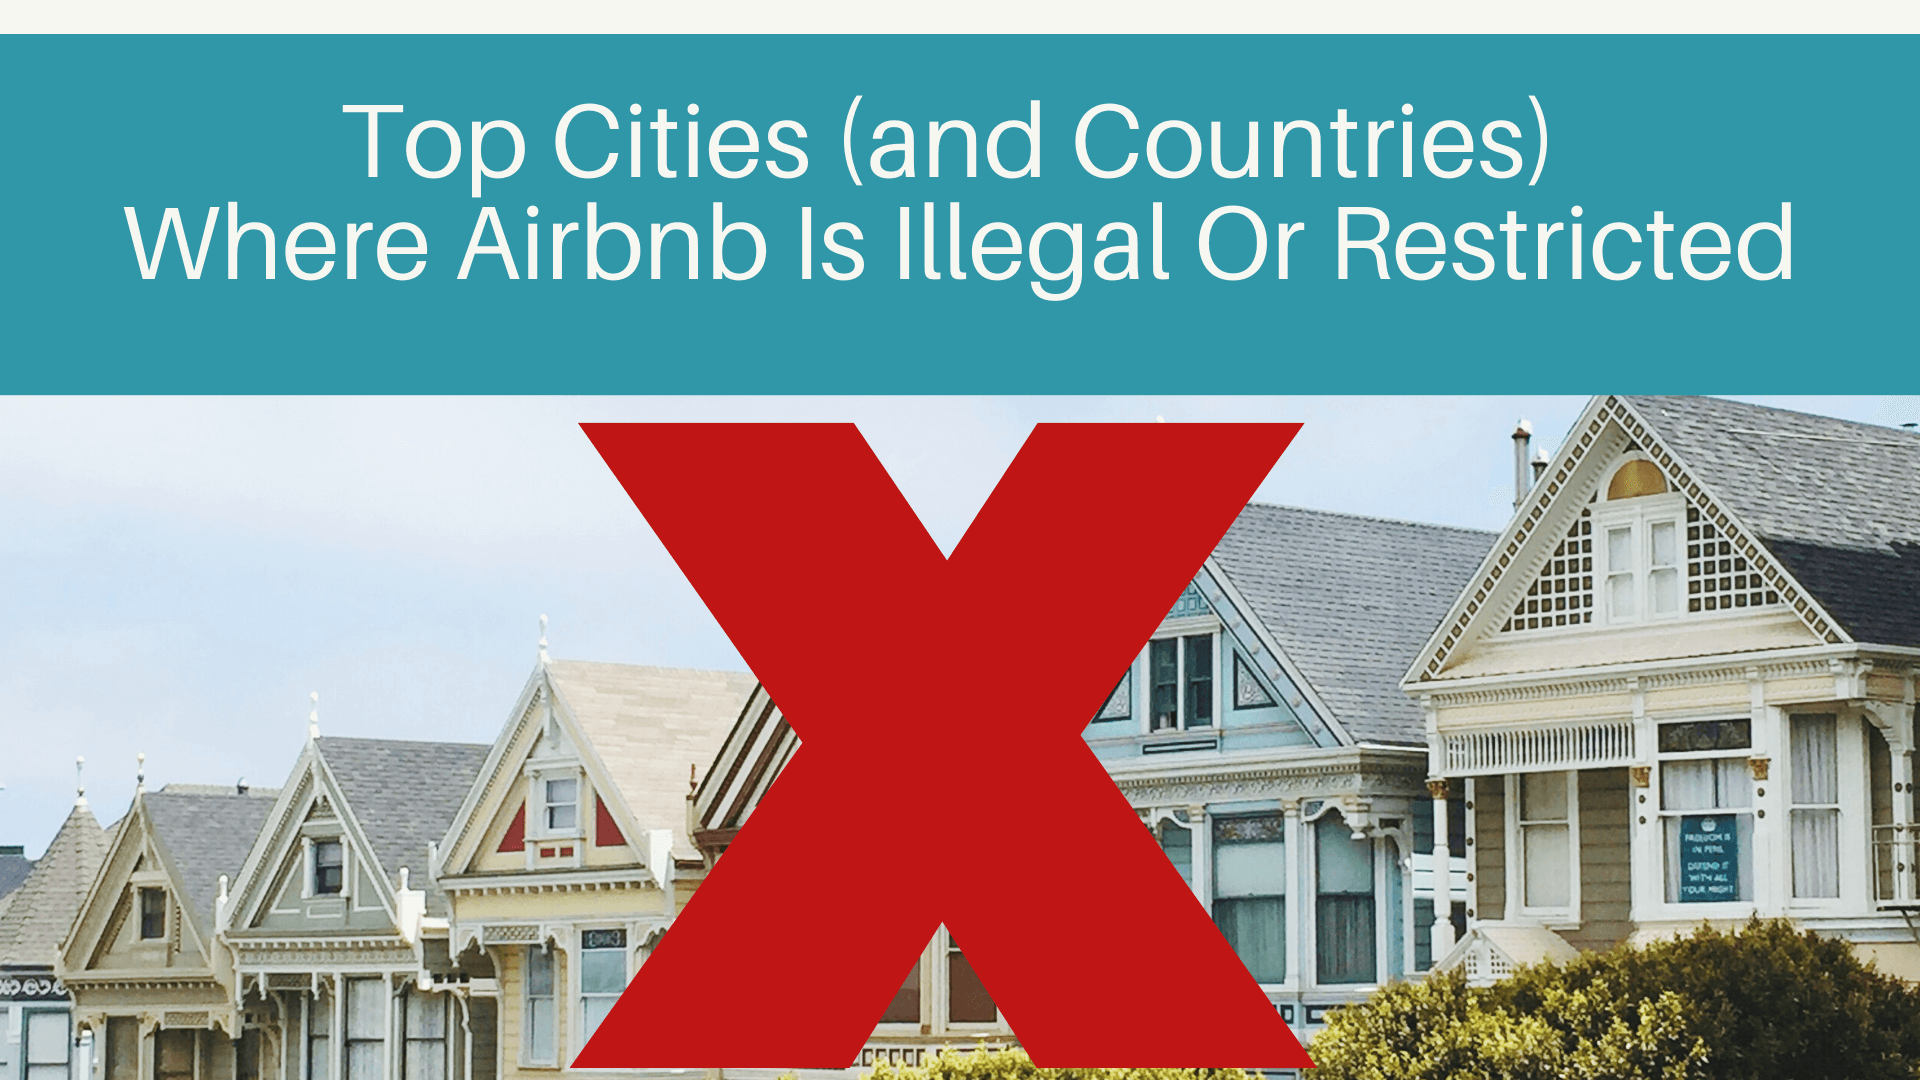 Top Cities and Countries Where Airbnb Is Illegal